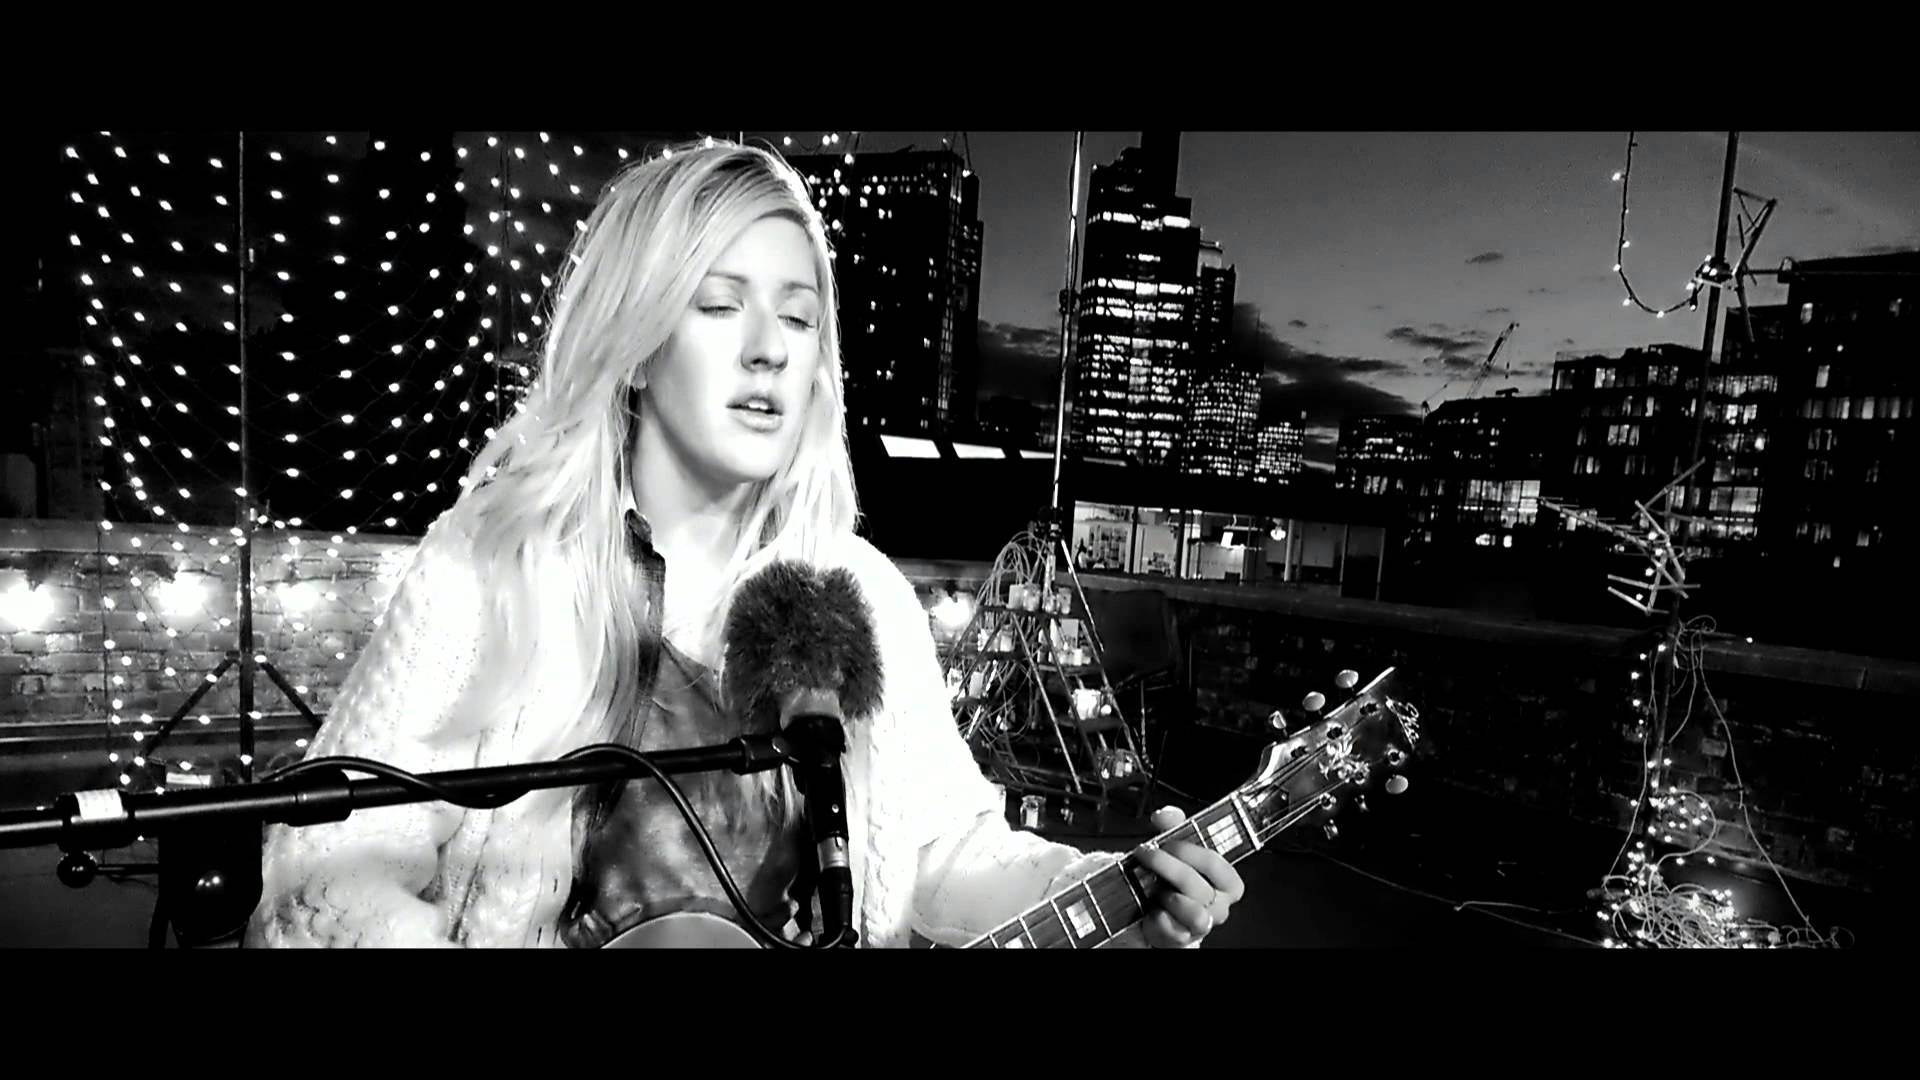 Ellie Goulding – How Long Will I Love You (Music Video)